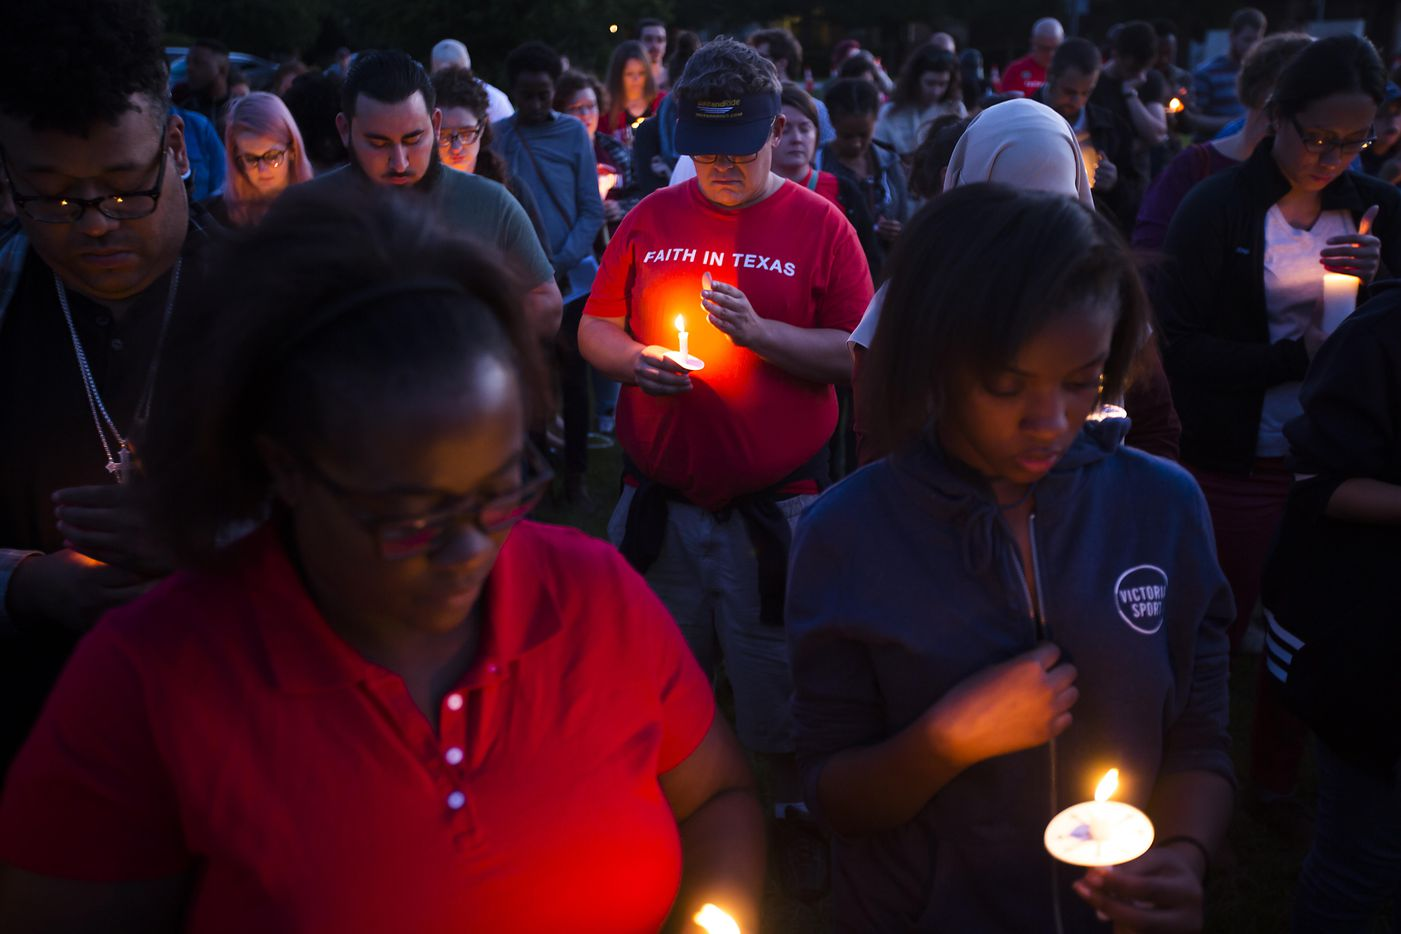 """Attendees try to keep their candles lit against the wind during the """"Remember His Name: Vigil for Jordan Edwards"""" candlelight vigil at Virgil T. Irwin Park on Thursday, May 4, 2017, in Balch Springs, Texas."""